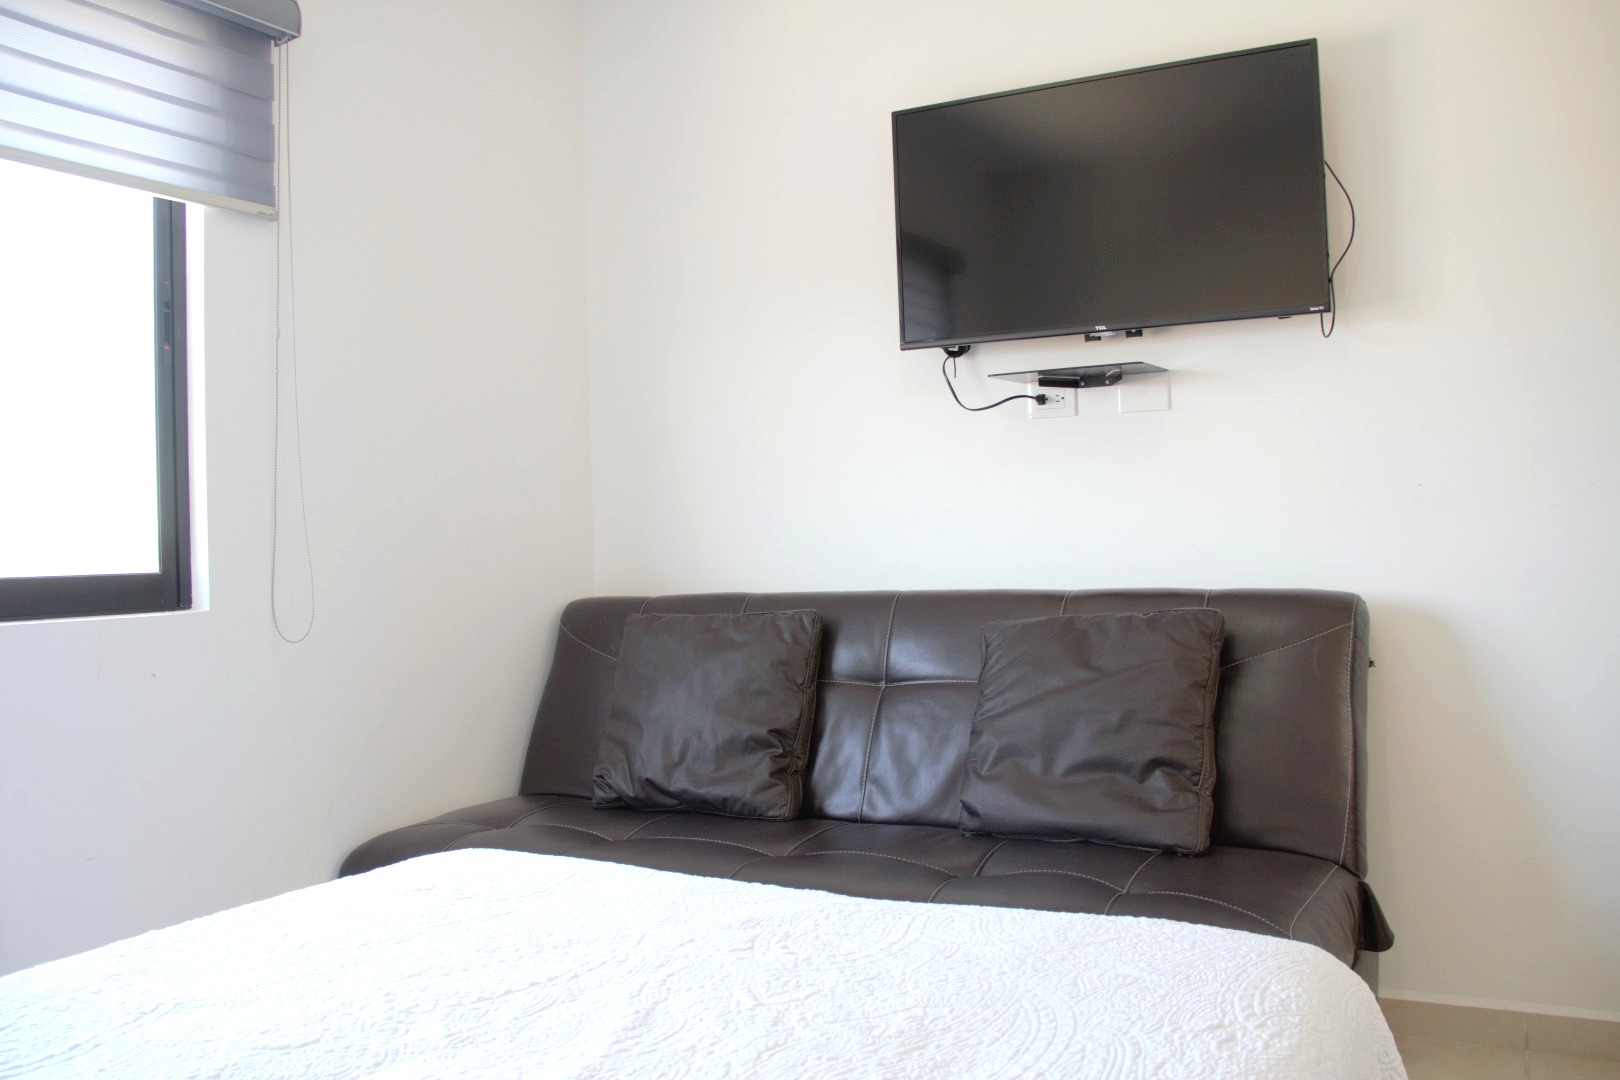 TV and sofa-bed in third bedroom.